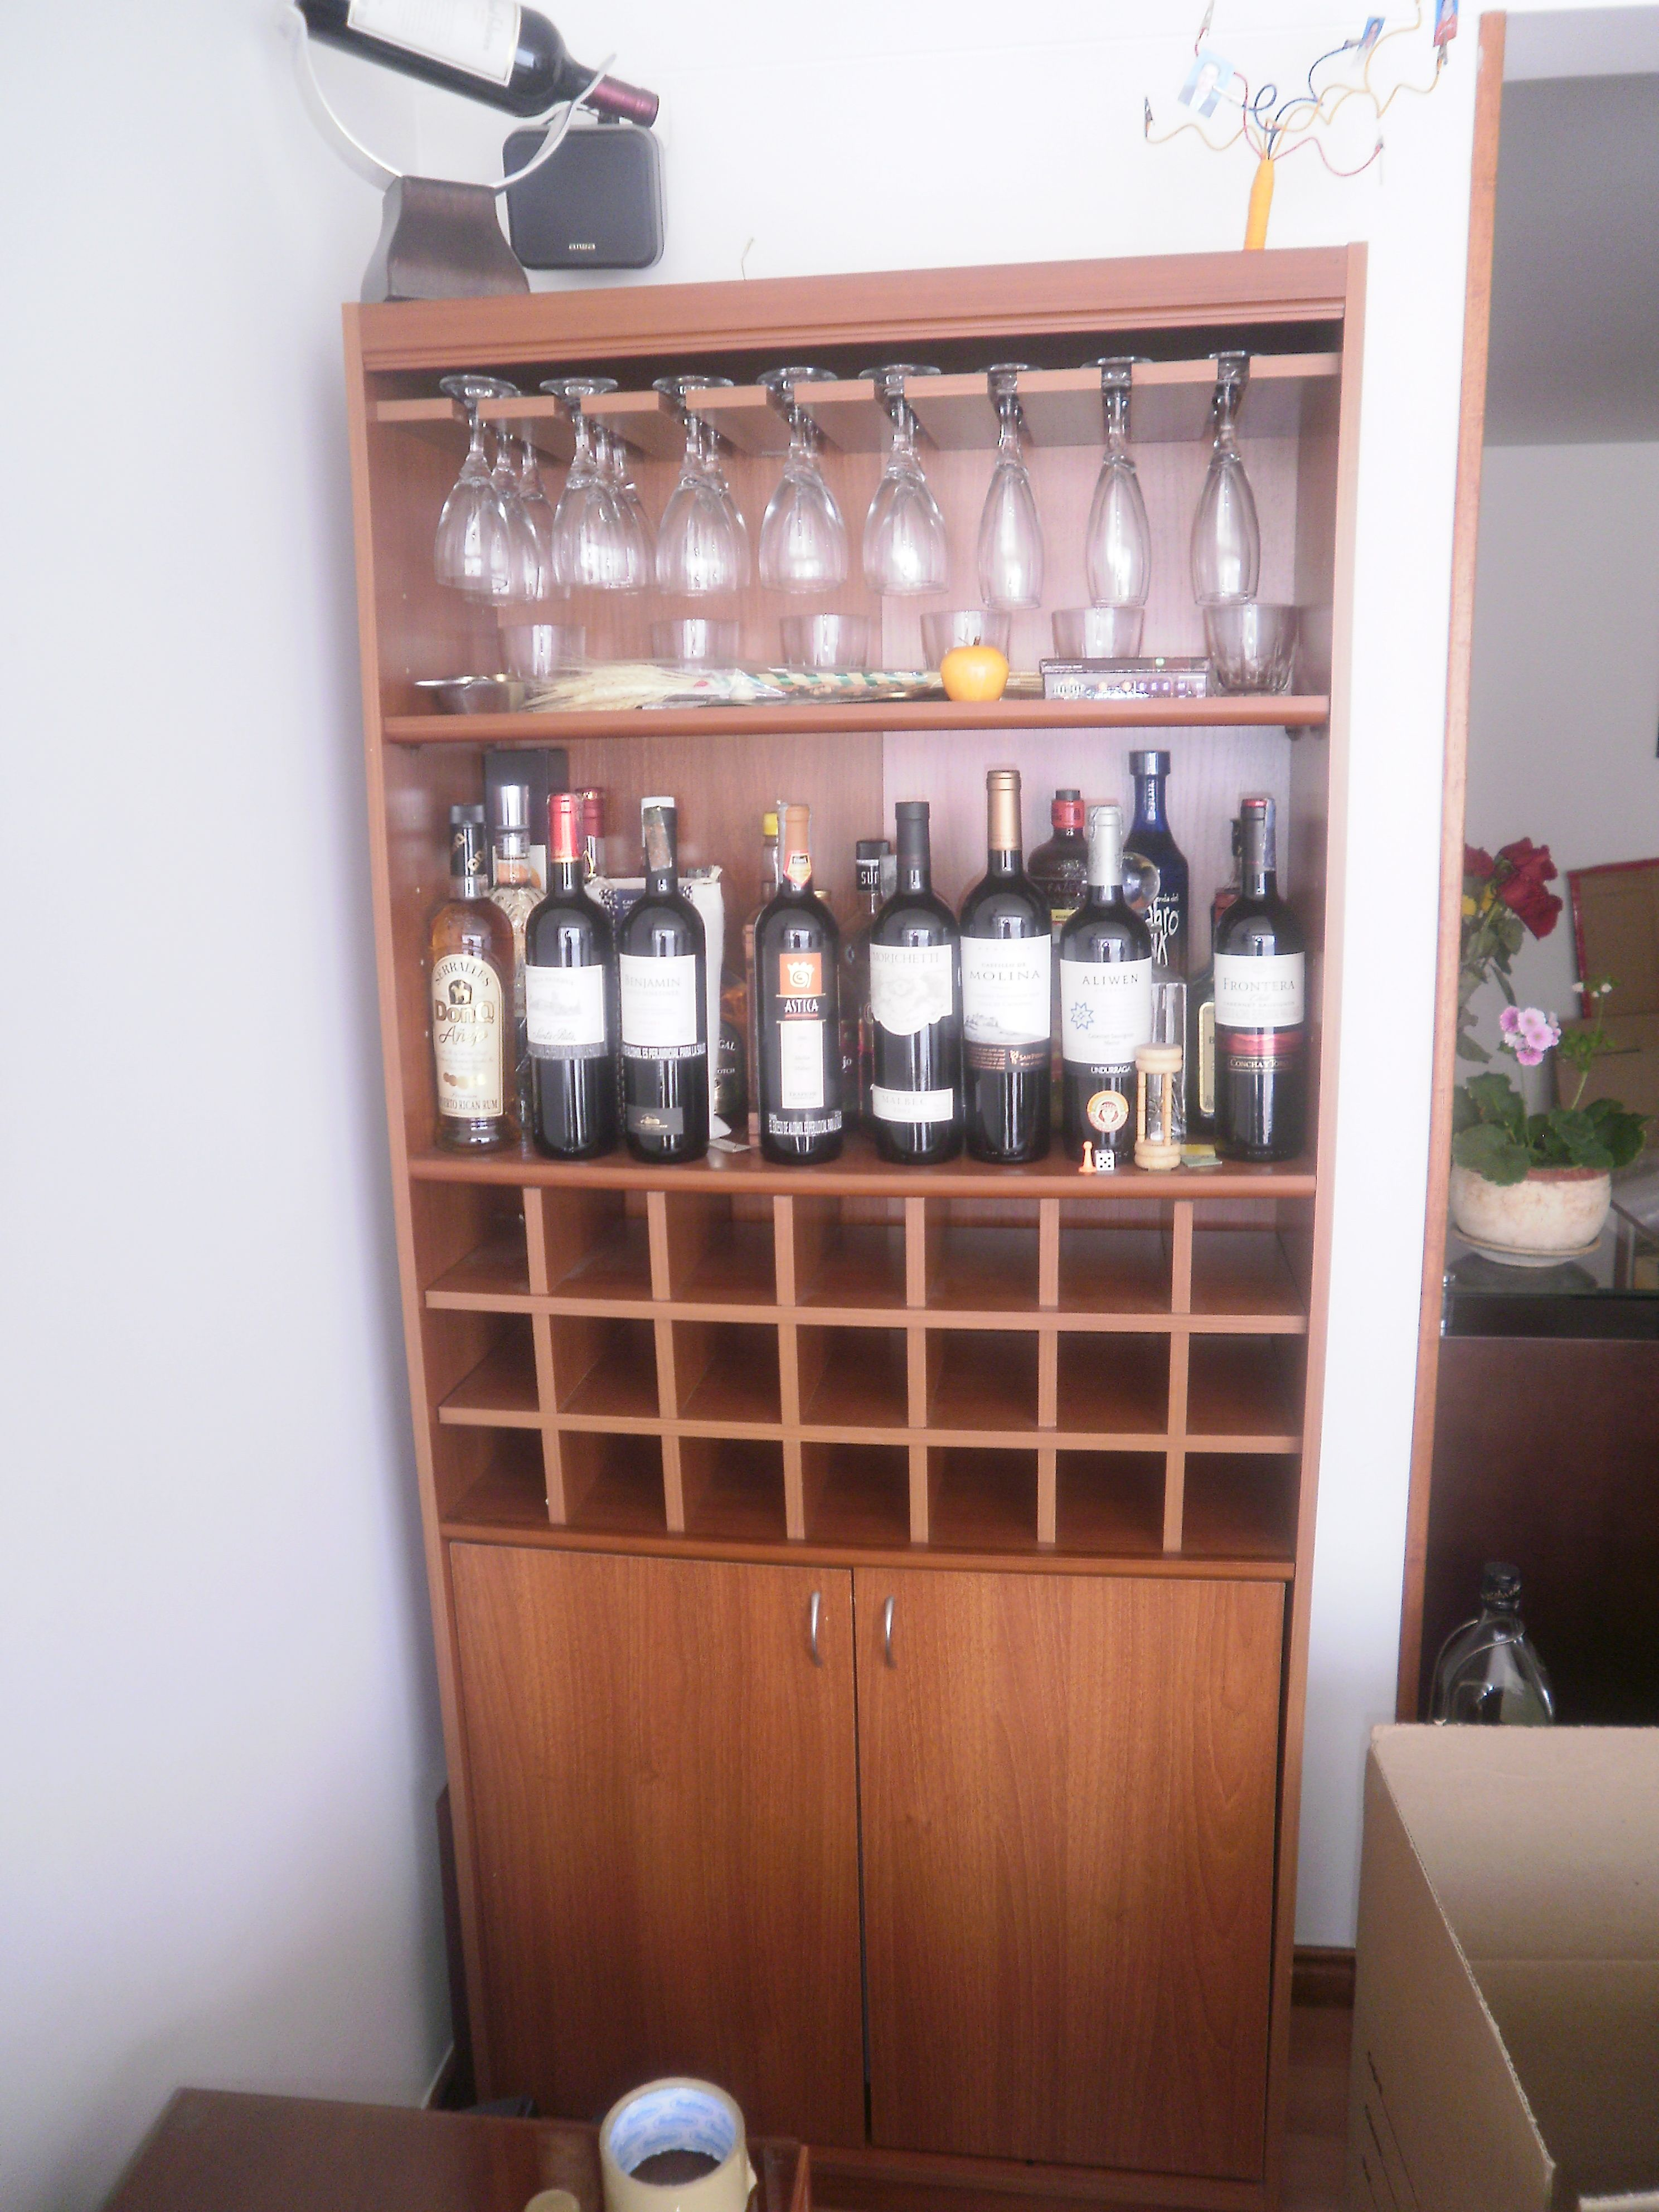 Muebles para bar buscar con google home pinterest for Bar licorera de madera para sala